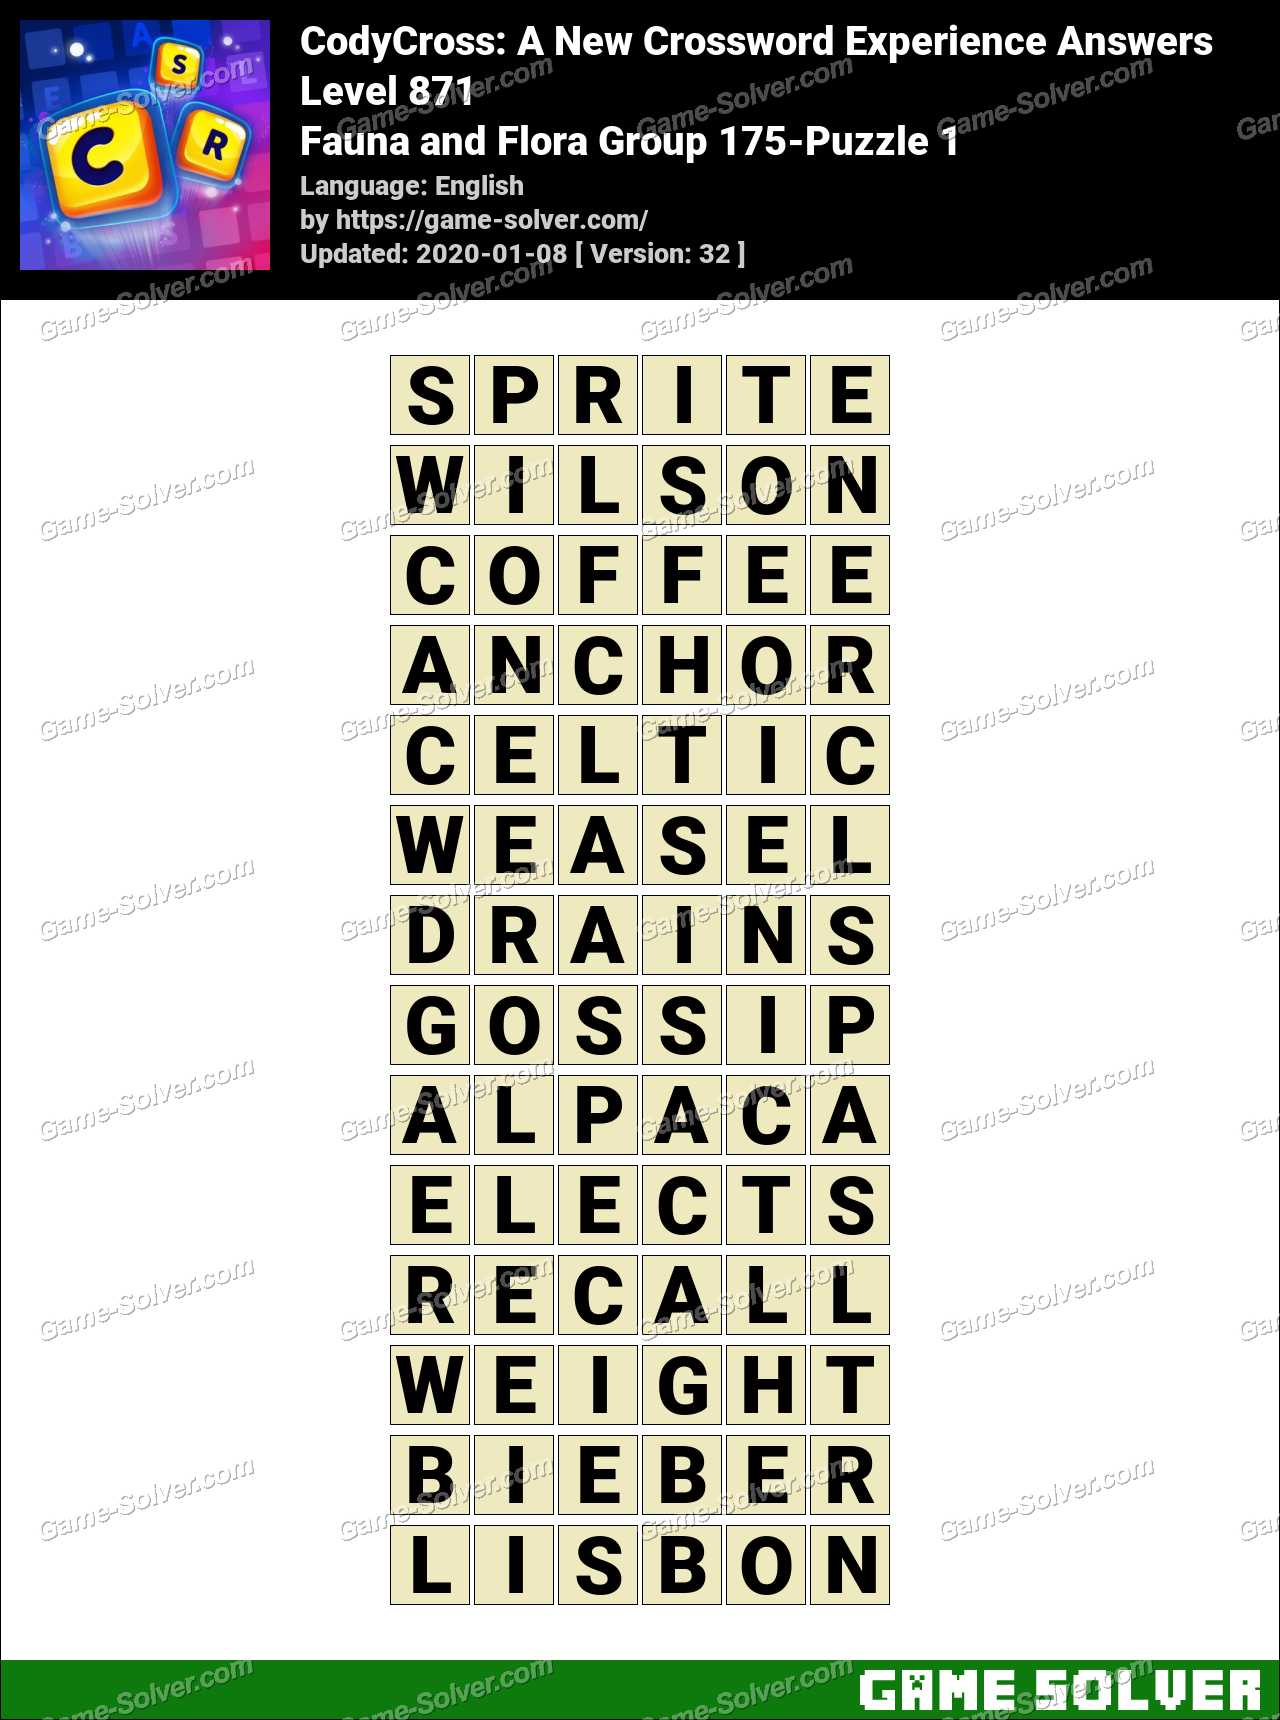 CodyCross Fauna and Flora Group 175-Puzzle 1 Answers